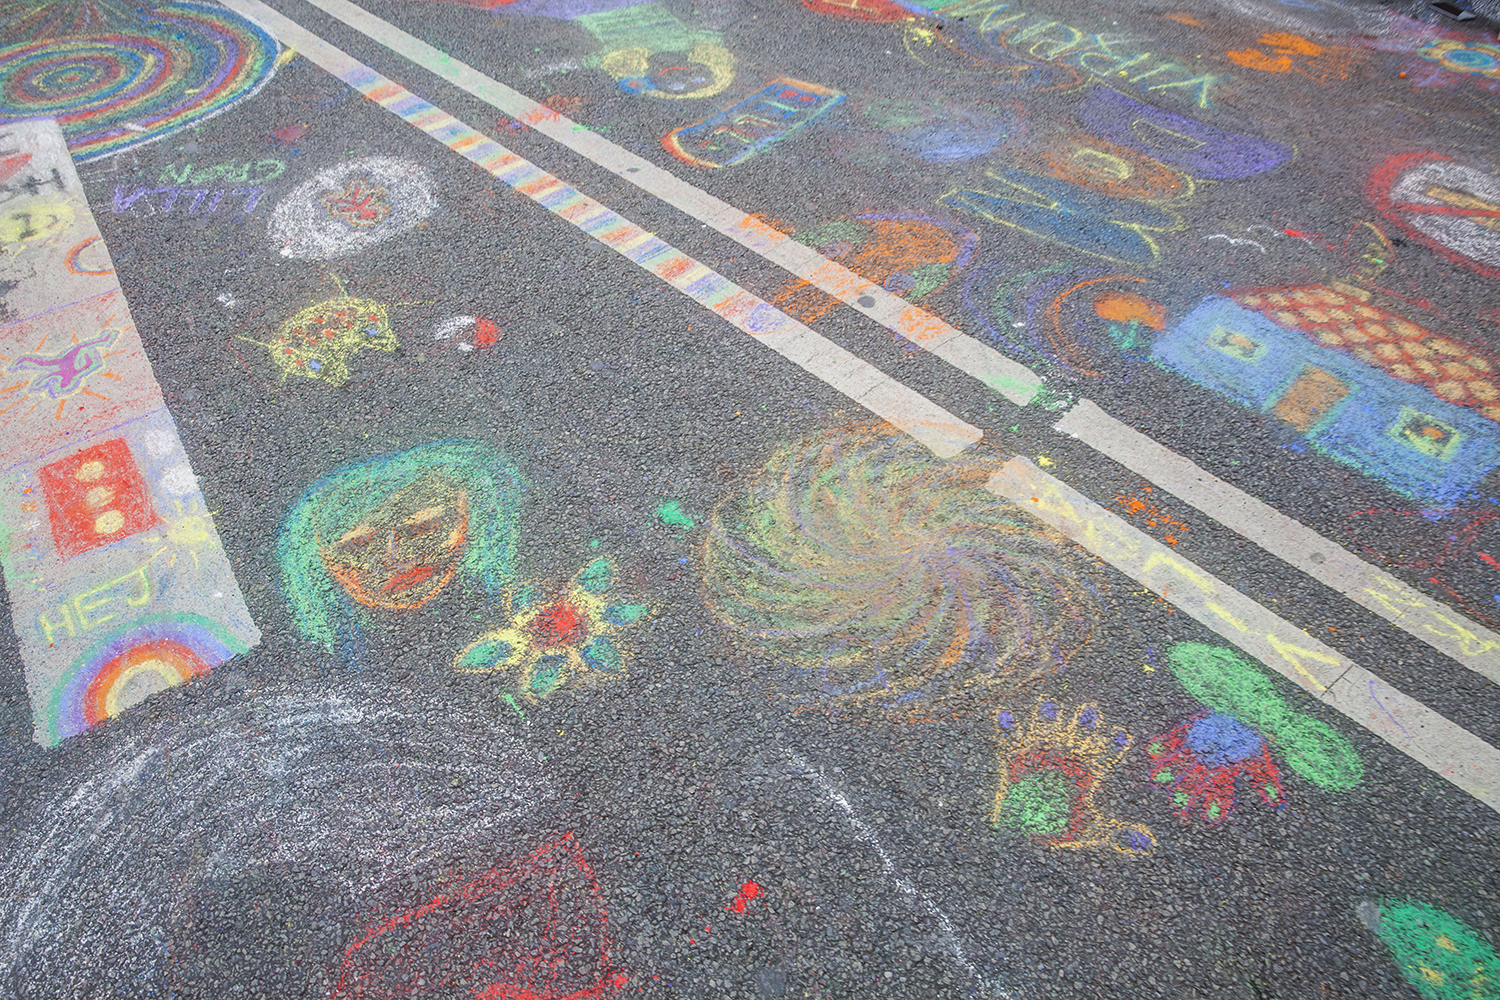 chalk_painting_day_18-09-16_helenalundquist_23